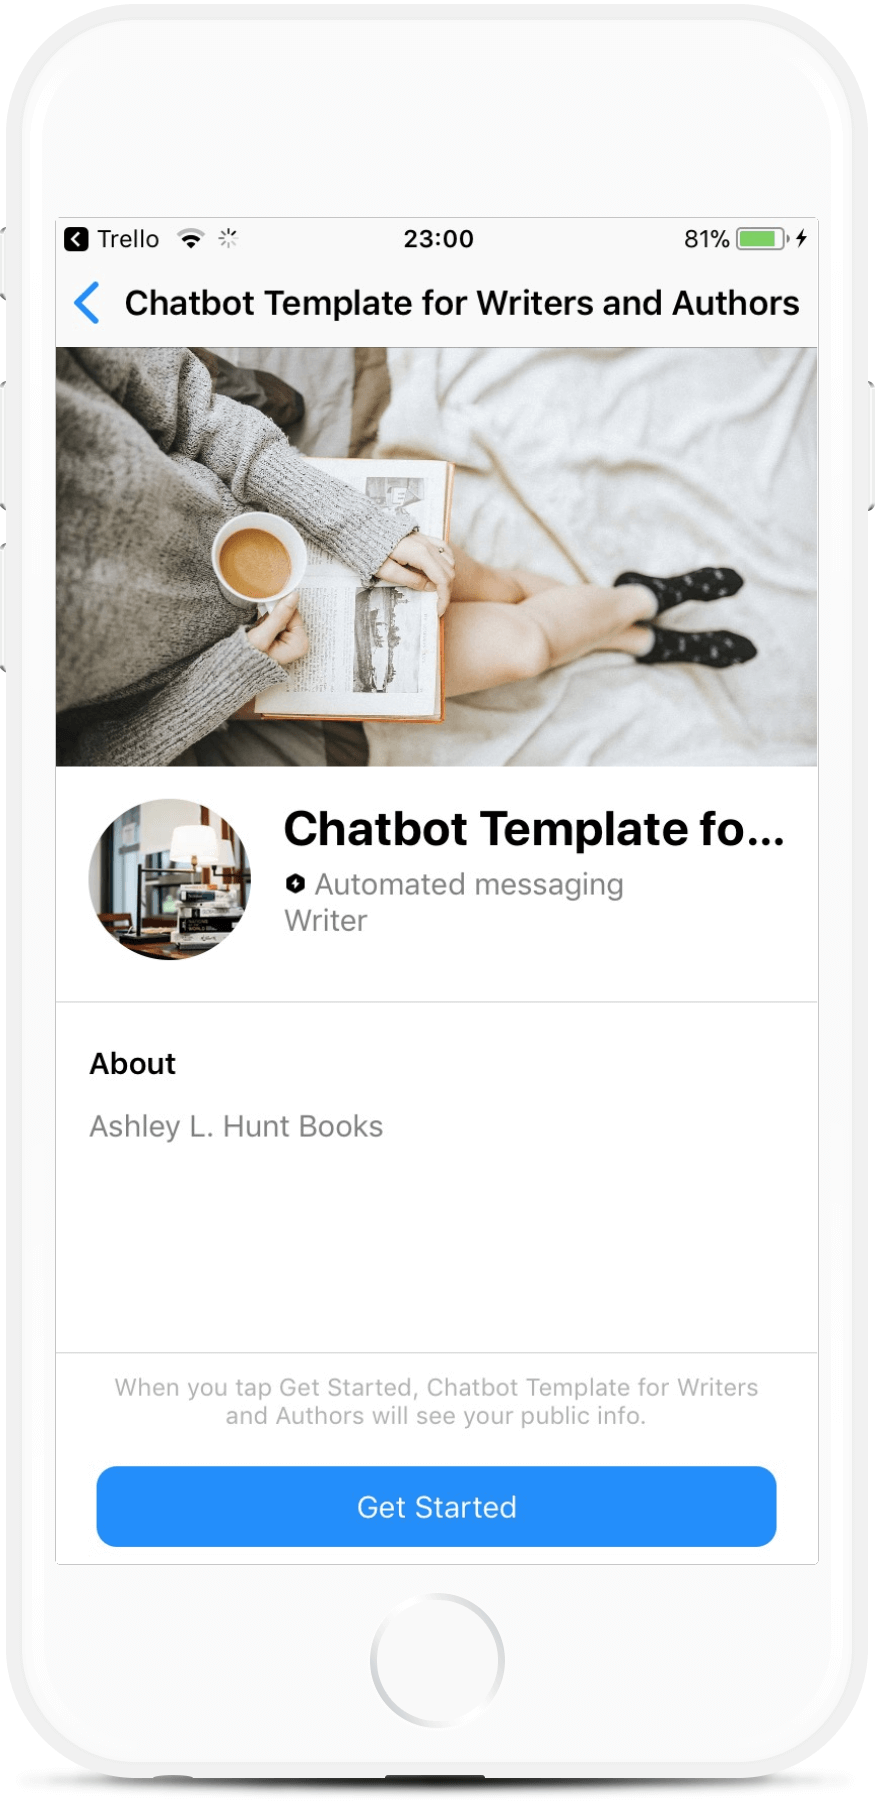 E-Commerce Bot Template for Writers and Authors bot screenshot